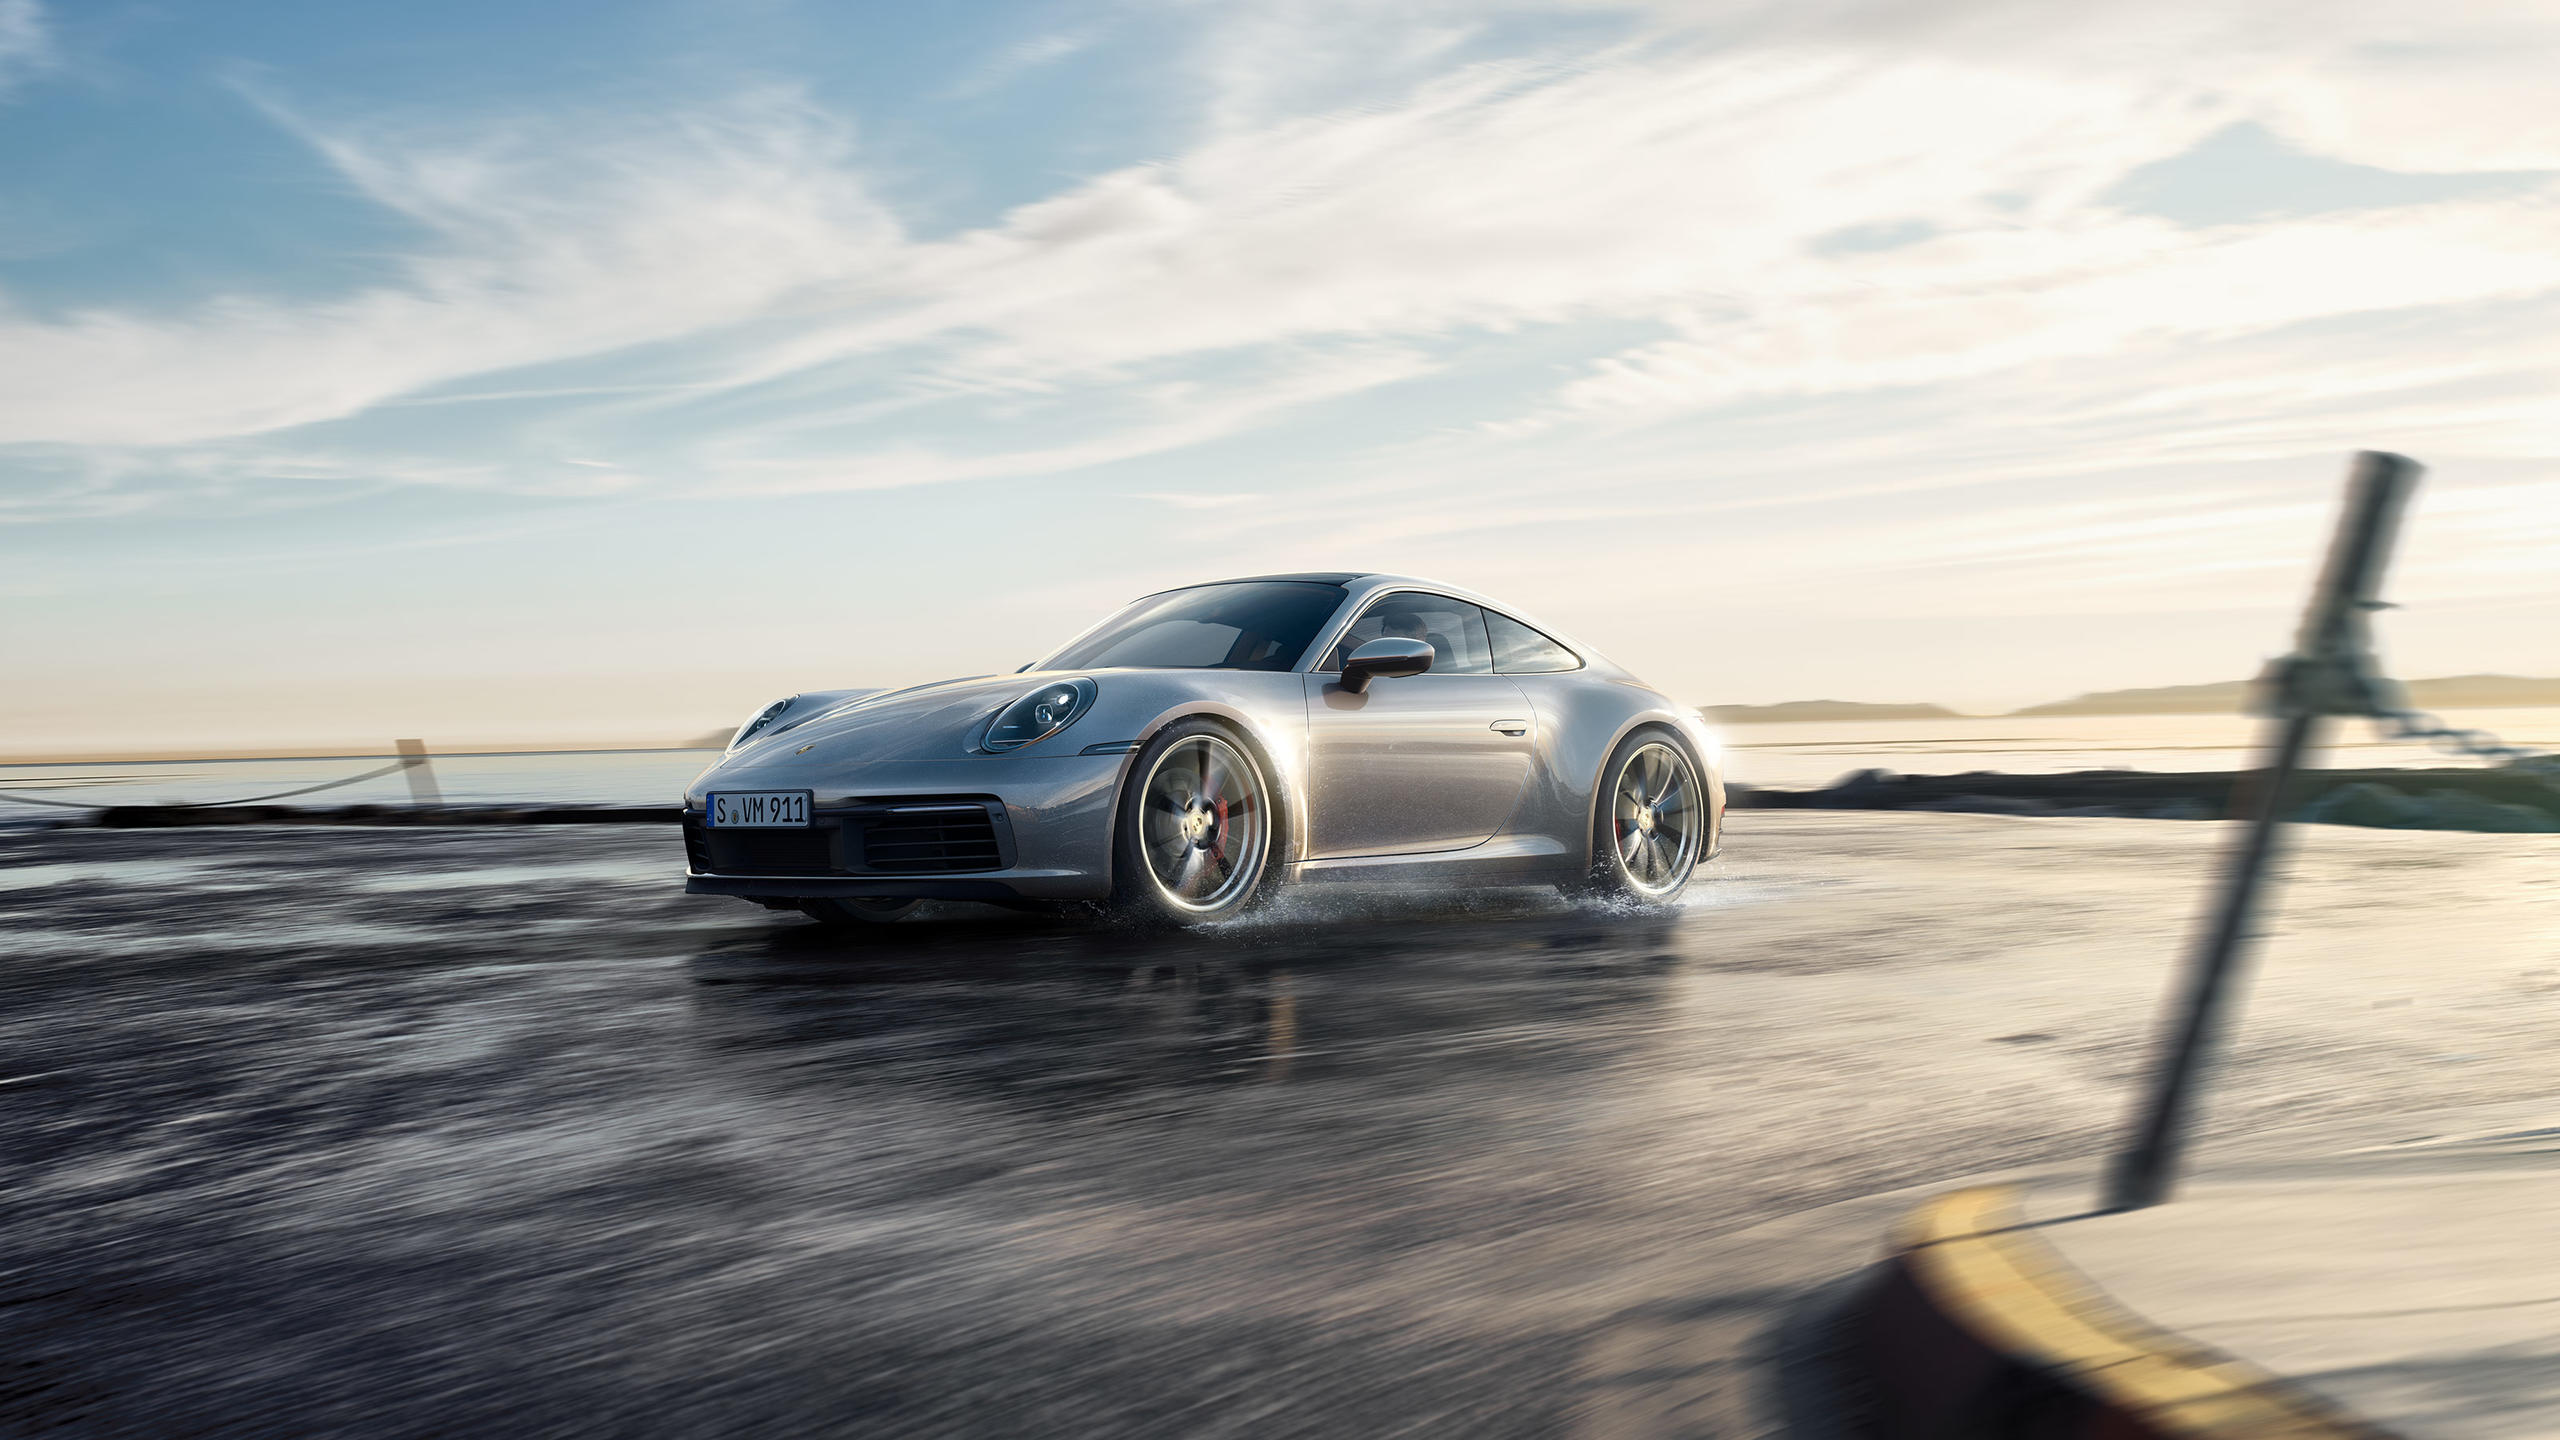 2020 Porsche 911 Carrera S on the South Shore of Montreal 2560x1440